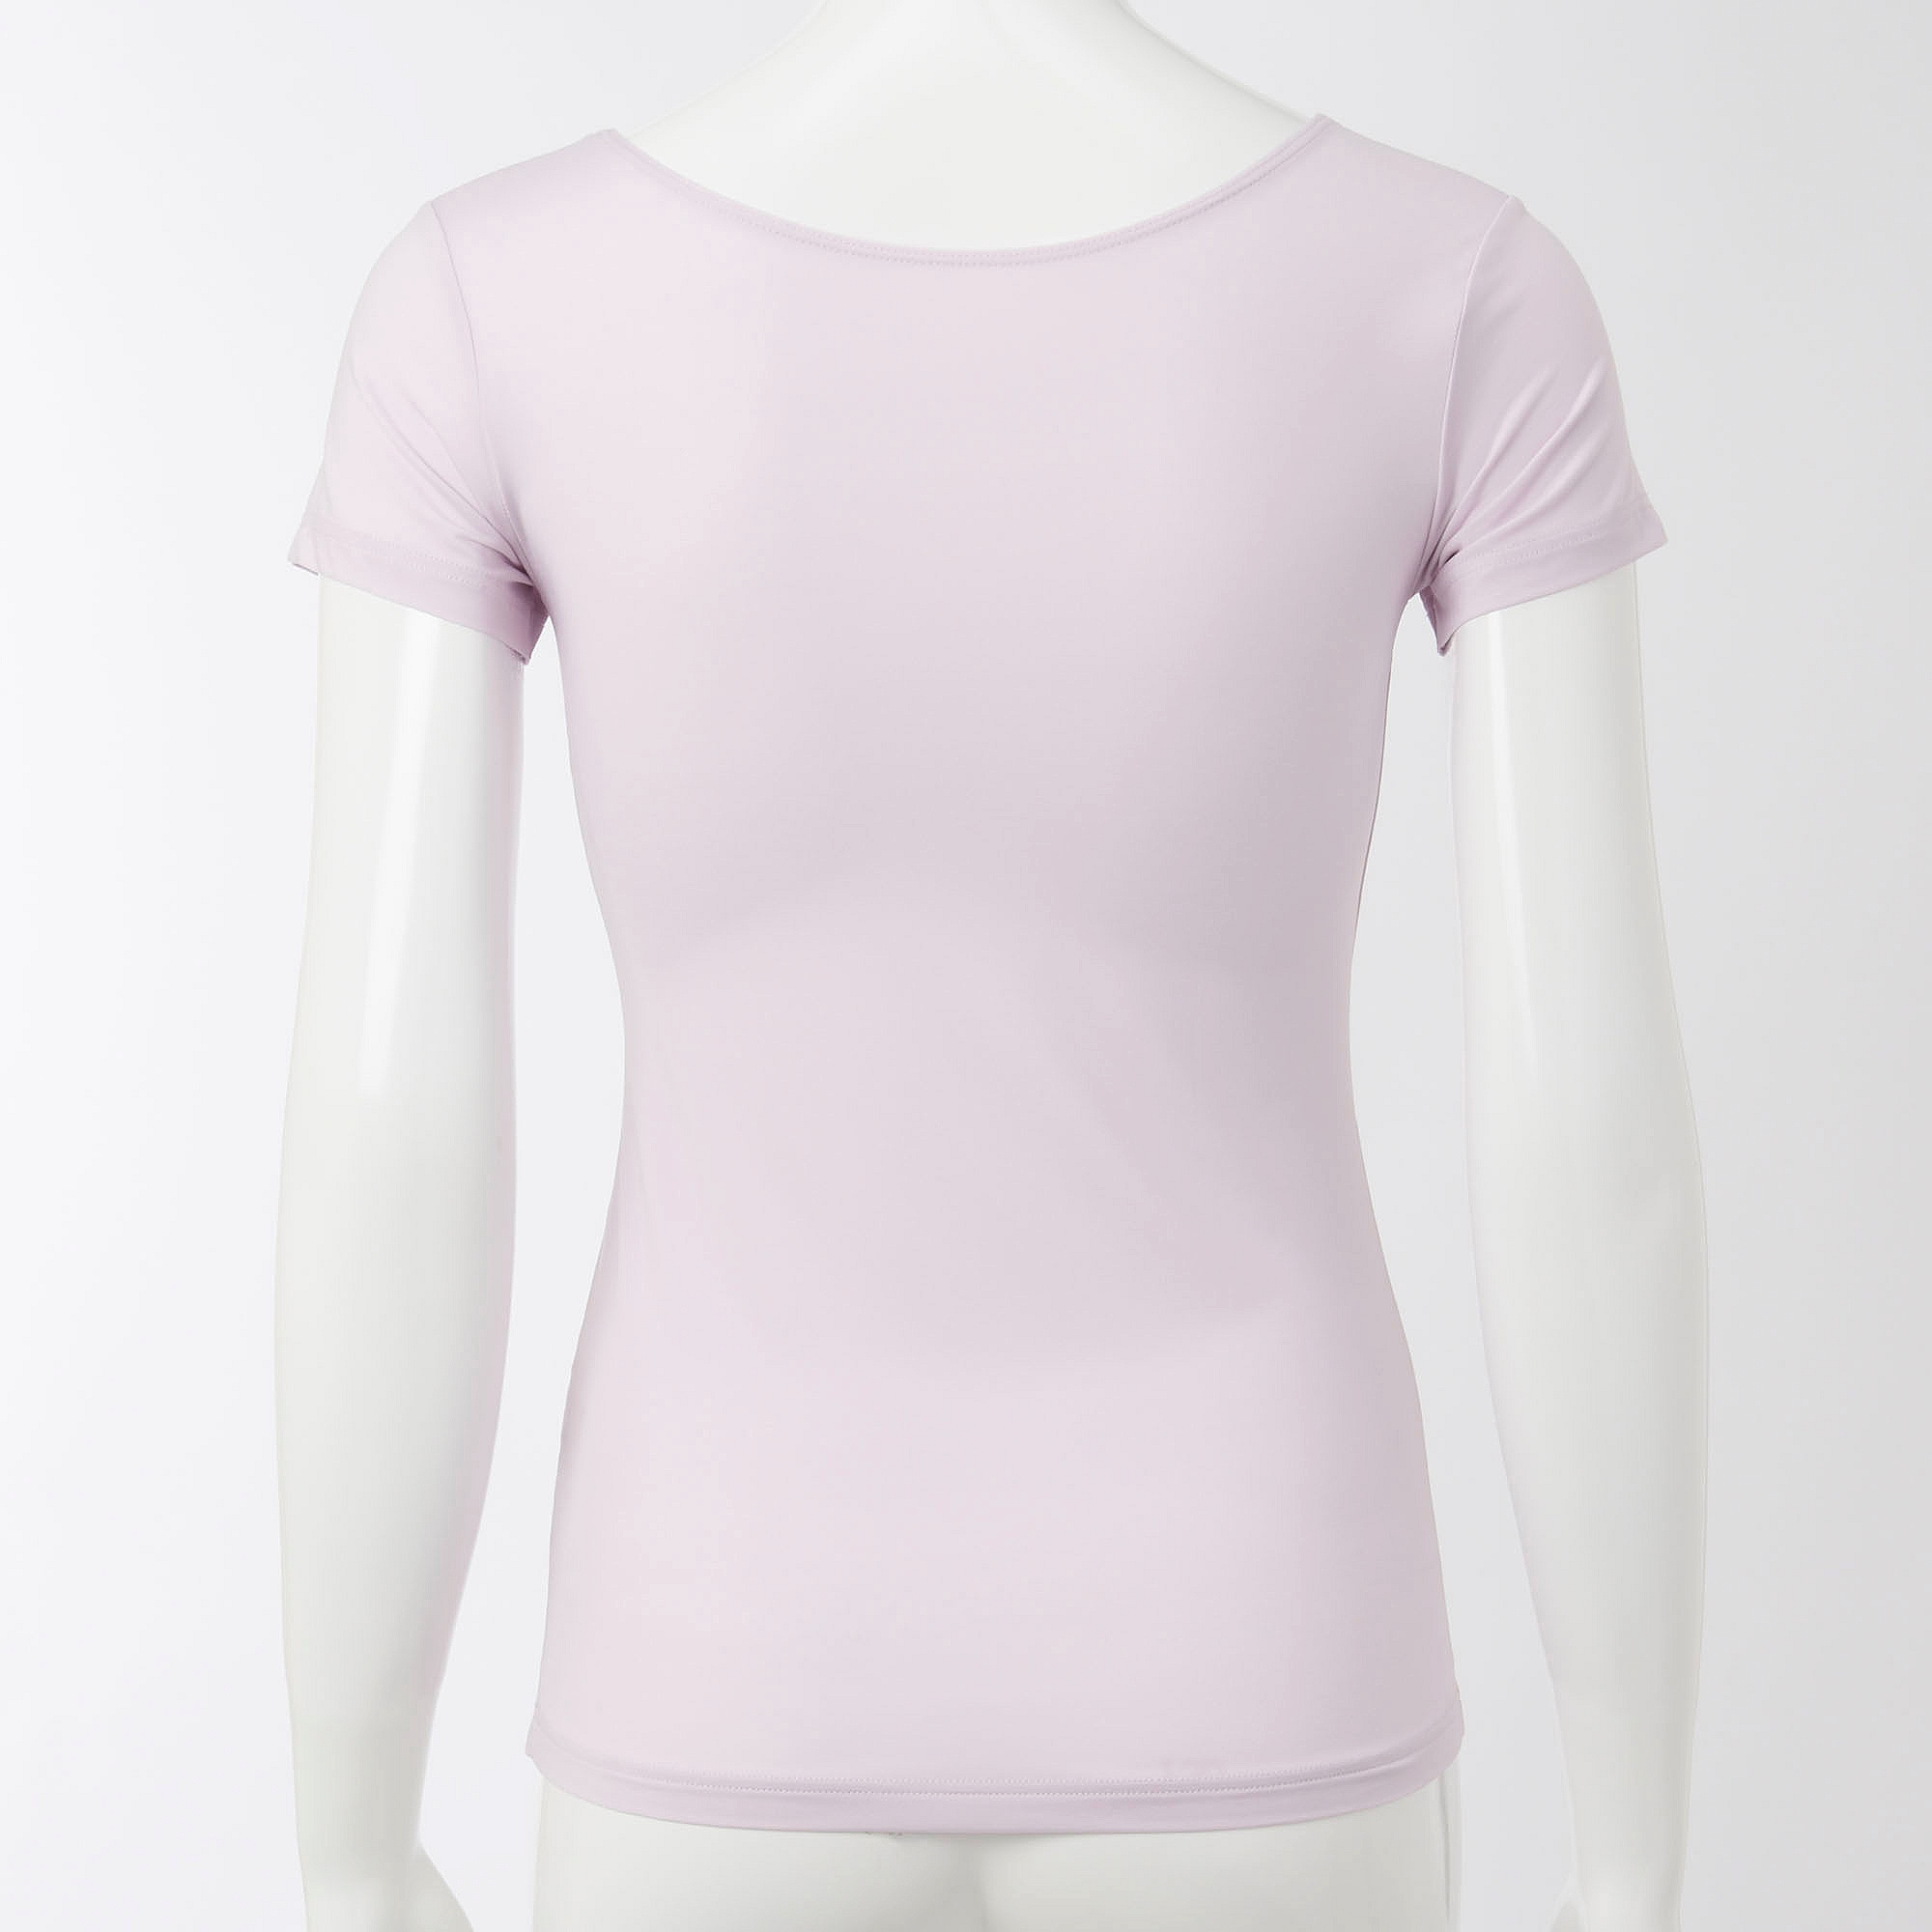 5d429e83d3bf Uniqlo WOMEN AIRism Scoop Neck Short Sleeve T-Shirt at £4.9